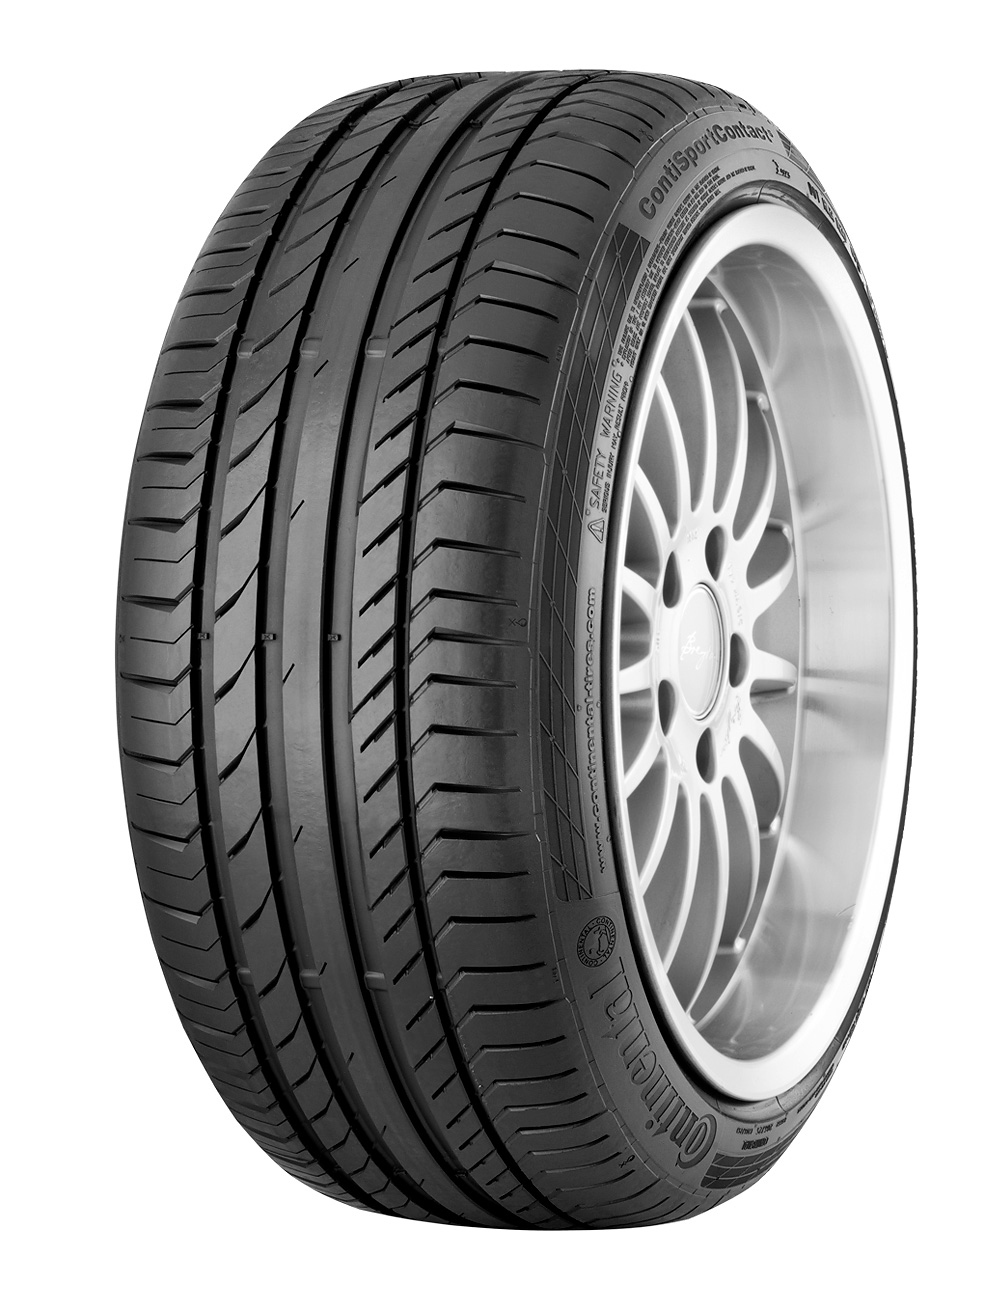 Auto Express Ultimate Tyre Test Award for ContiSportContact 5